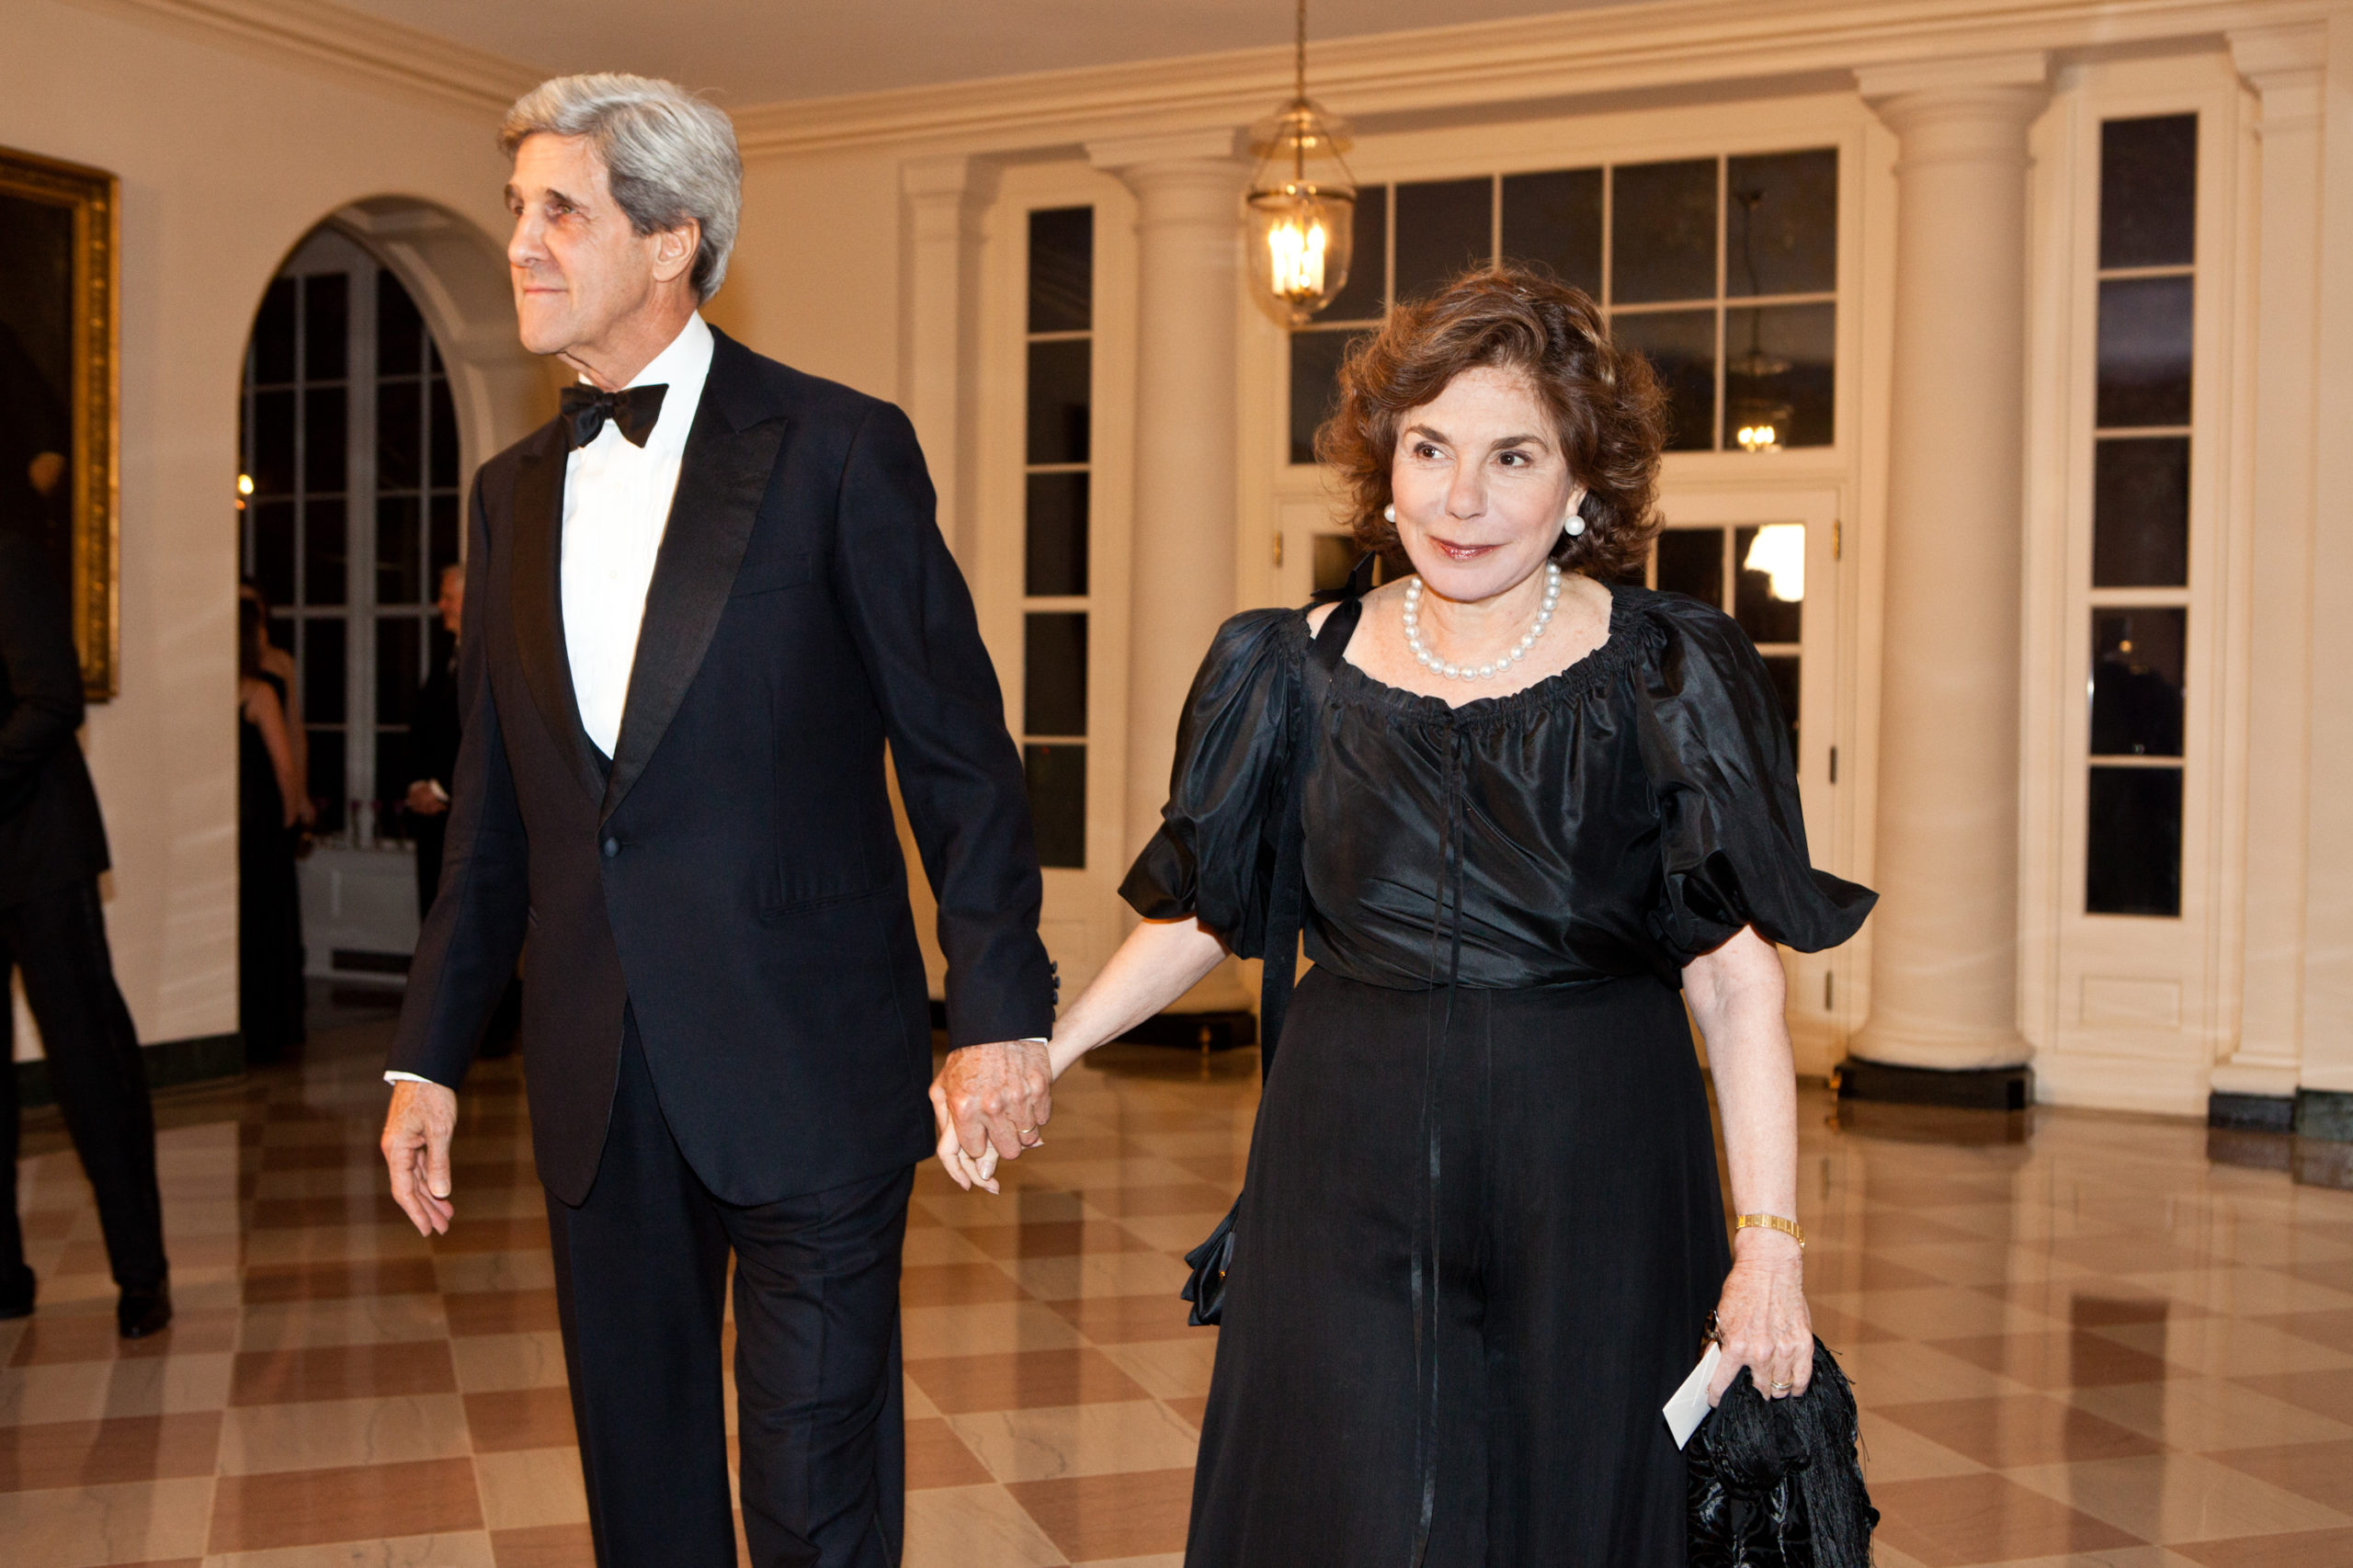 WASHINGTON - MARCH 14: Sen. John Kerry (D-MA) and Teresa Heinz Kerry (R) arrive for a State Dinner in honor of British Prime Minister David Cameron at the White House on March 14, 2012 in Washington, DC. Cameron is on a three day official visit to Washington. (Photo by Brendan Hoffman/Getty Images)